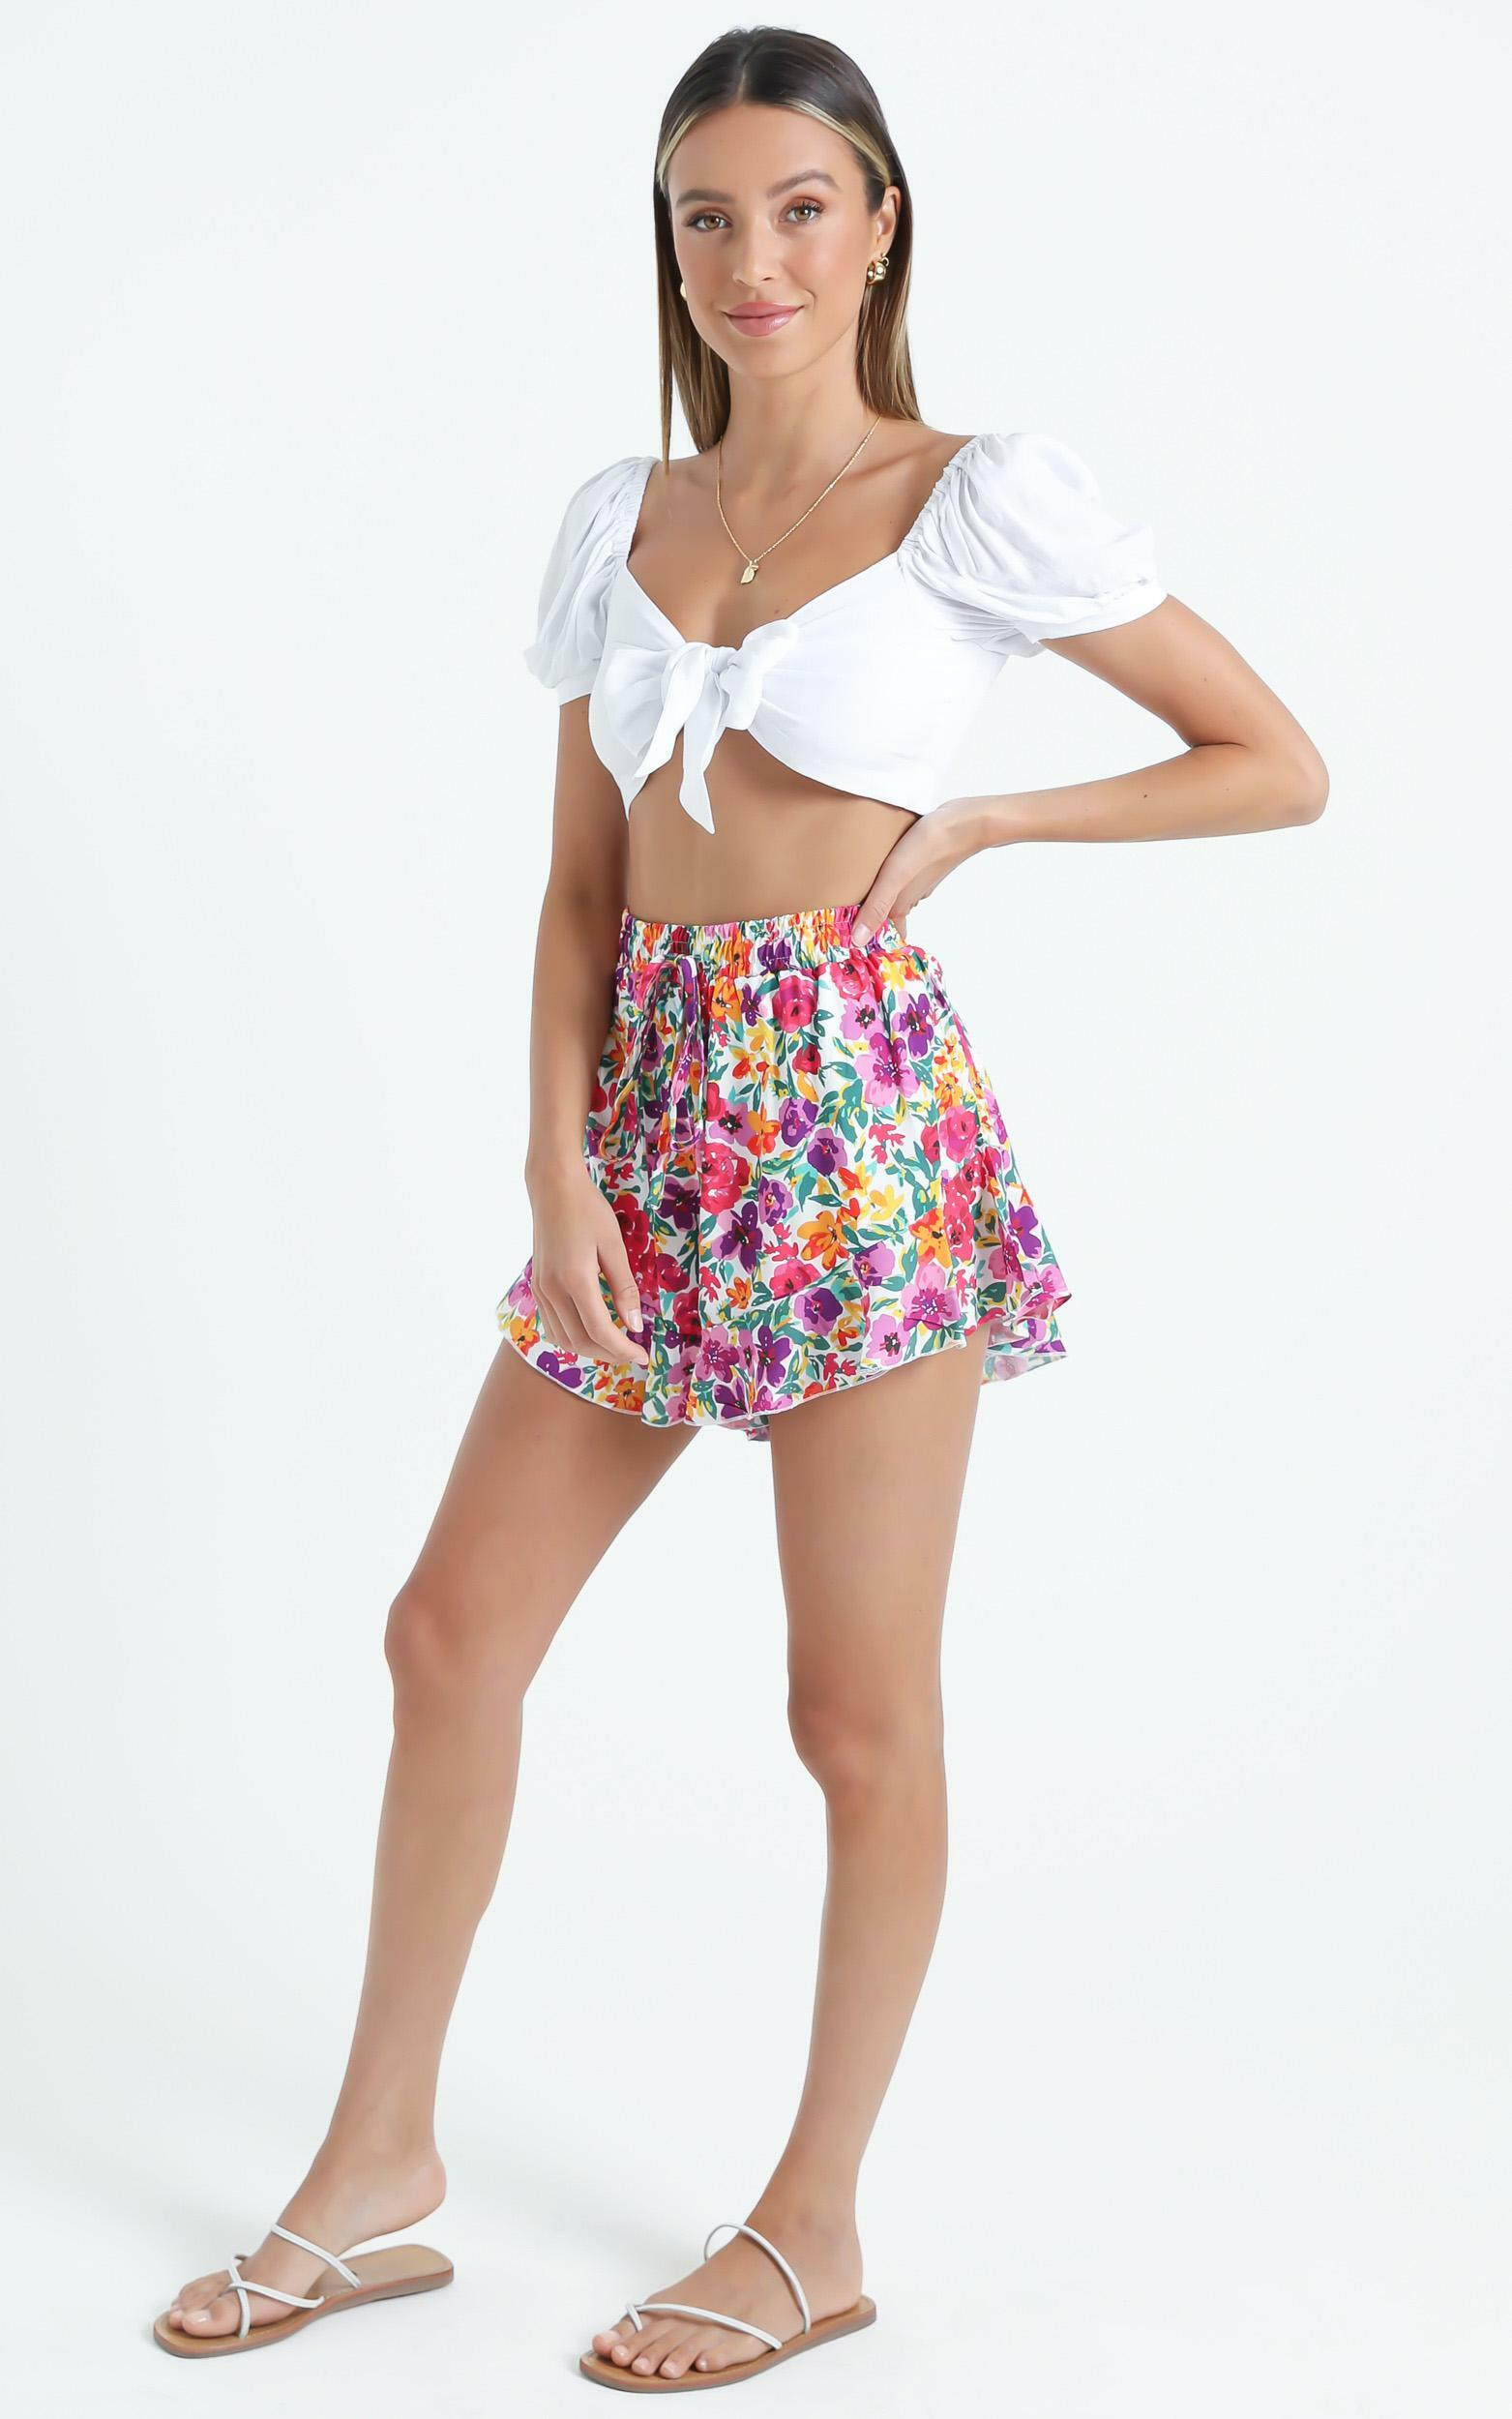 Beach Vibes Shorts in Packed Floral - 06, MLT5, hi-res image number null